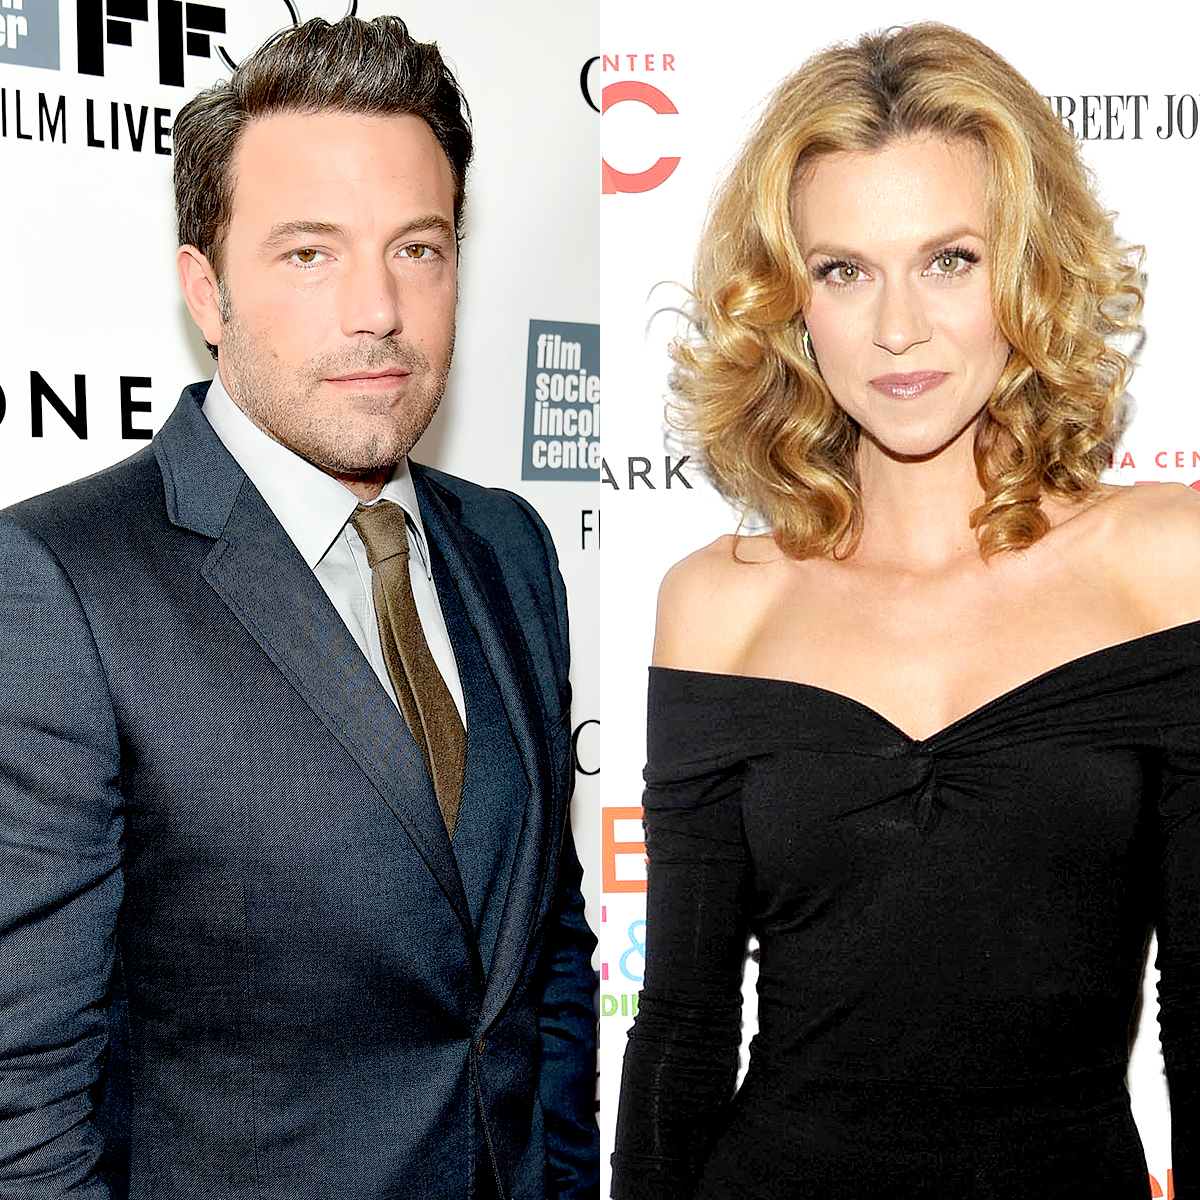 Ben Affleck and Hilarie Burton